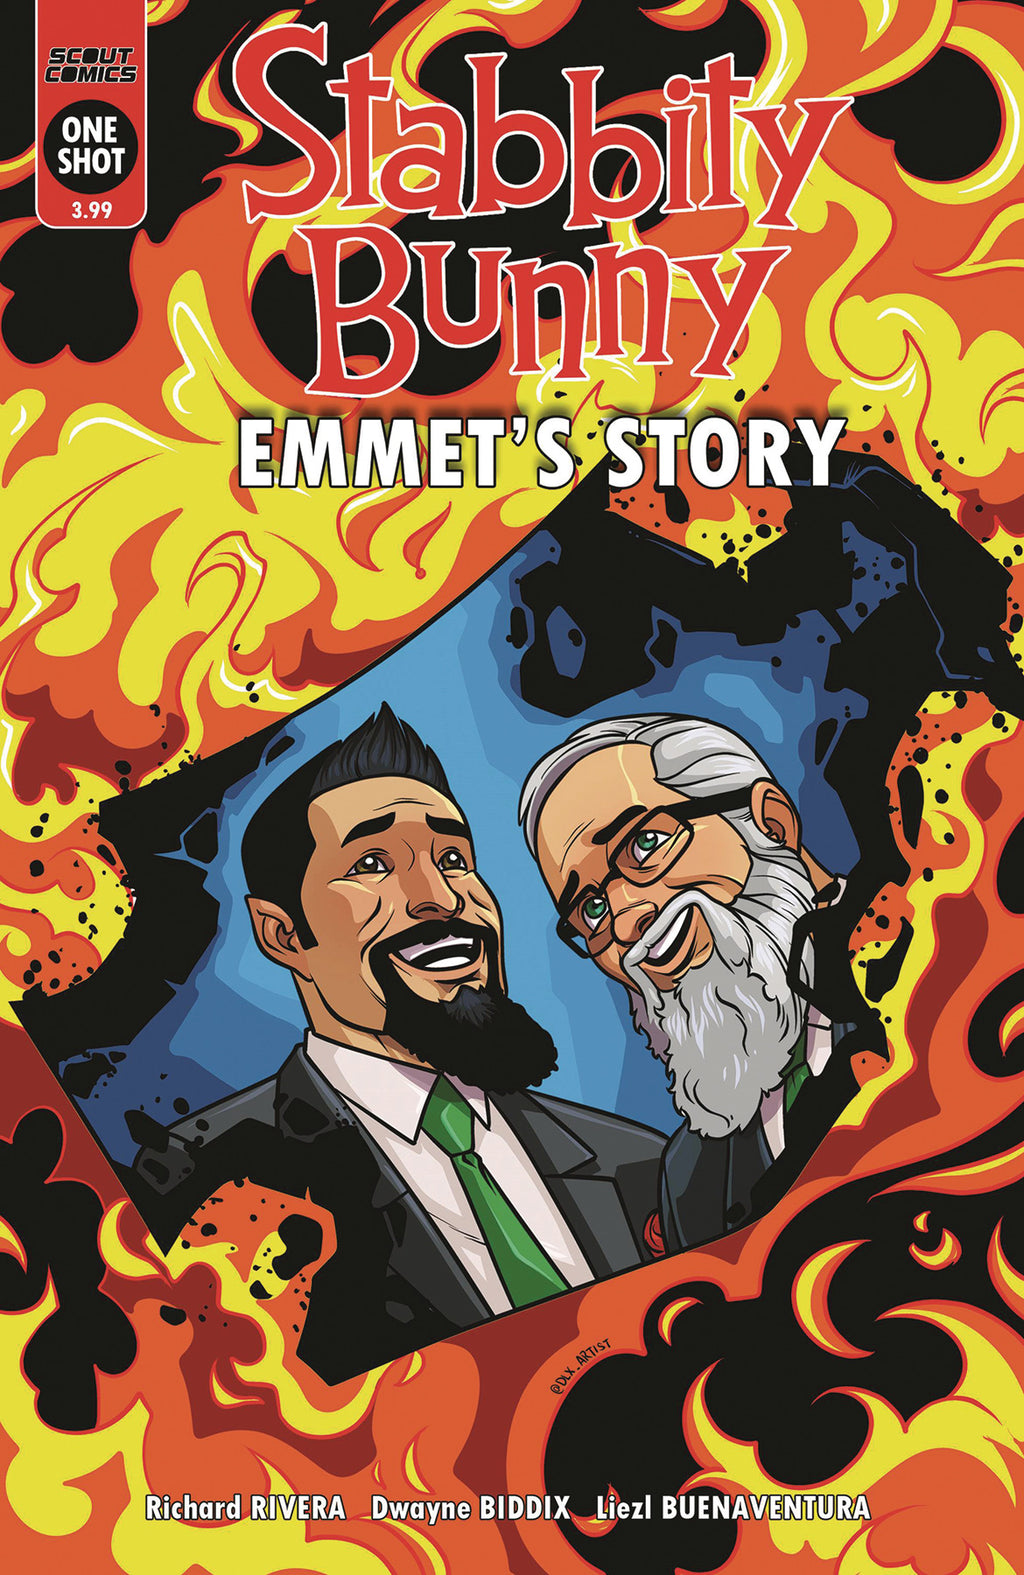 Stabbity Bunny Emmet's Story #1 - Cover A